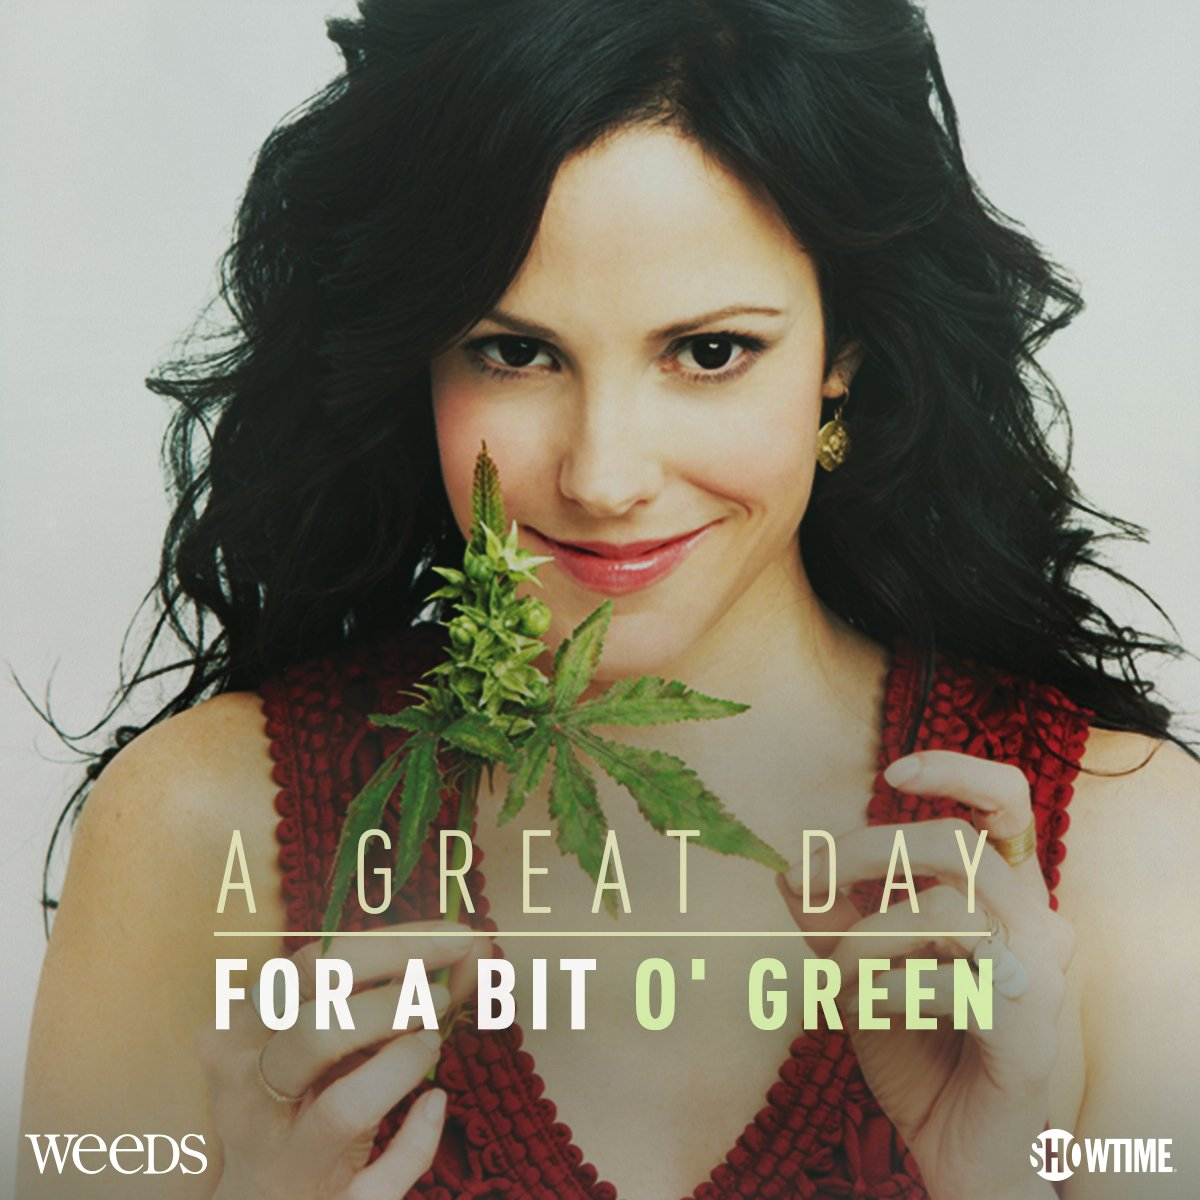 Go green this #StPatricksDay! Stream #Weeds on https://t.co/pvDSrv0YpY. https://t.co/PVztFjfRgP